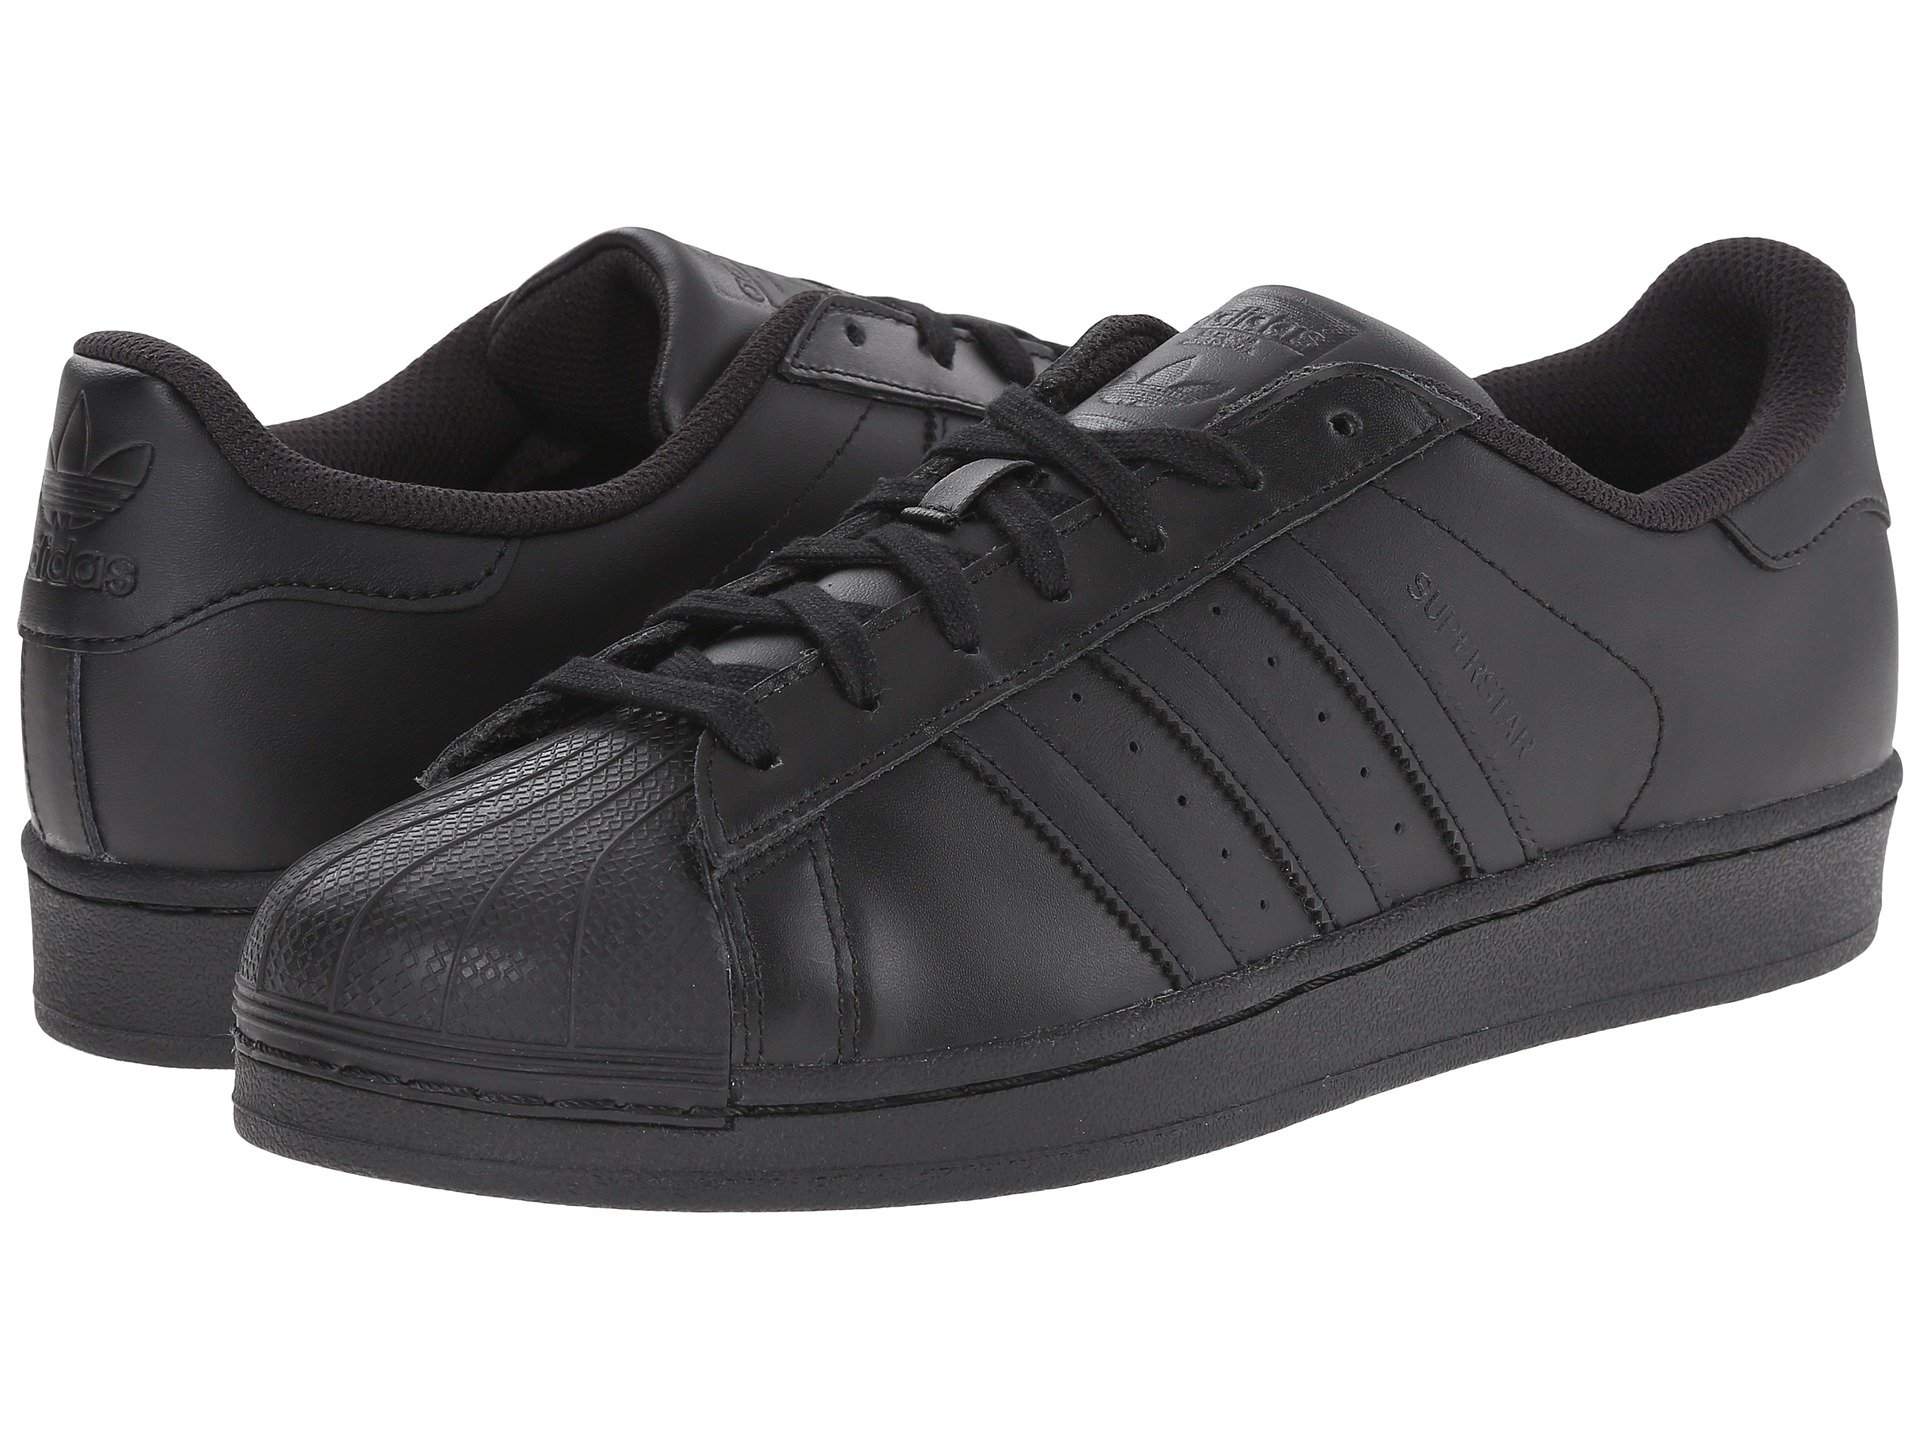 Cheap Superstar Black Shoes, Buy Adidas Superstar Black Online Sale 2017